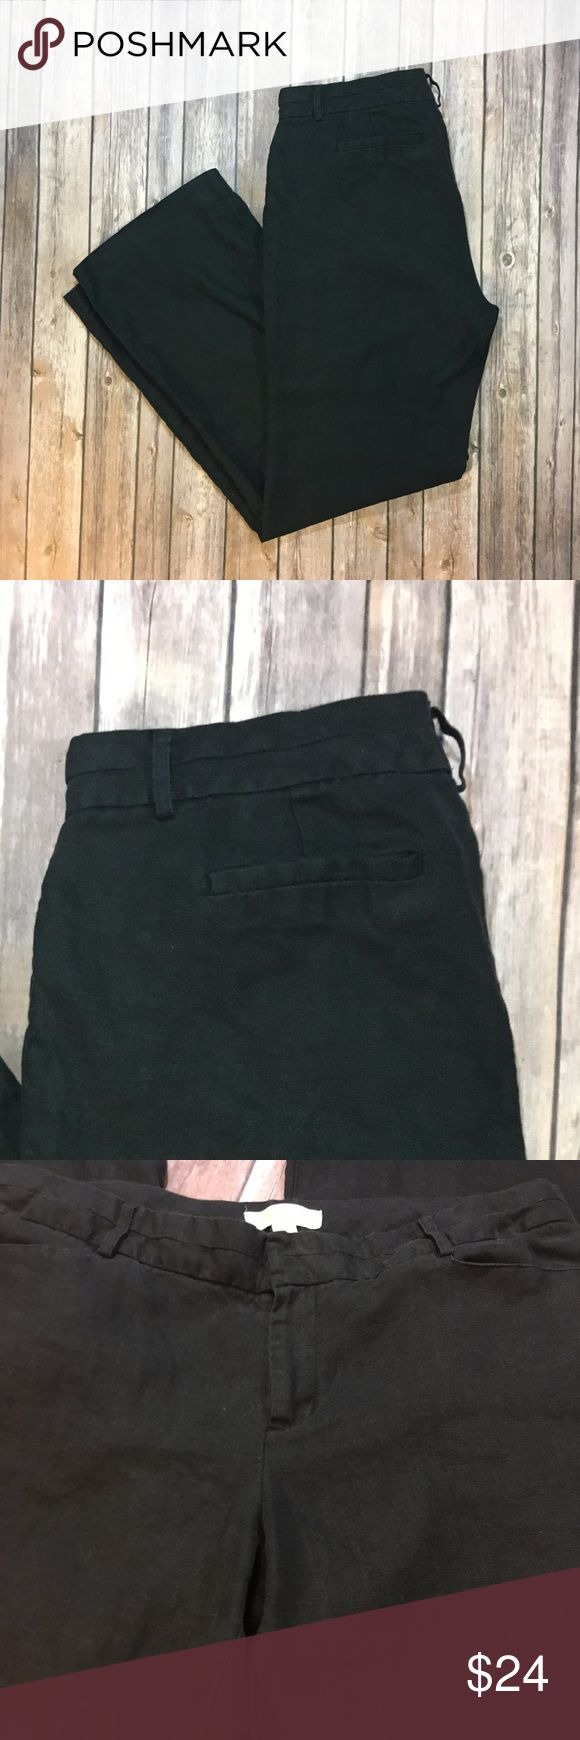 "⬇️$24⬇️ Michael Kors ladies dress pants black Michael Kors ladies trousers. Excellent used condition. No flaws, but care tag has been cut off. Material is either cotton or linen, very soft and lightweight. Perfect dress pants for mild to warm weather.  Measurements: waist: 18.5"" when laid flat; inseam 31.5"" ; rise 10.5""; thigh 12""; width of leg opening at bottom 10.5""  Bundle & save!  Reasonable offers accepted. I ship the same or next day! No trades/off app sales From a smoke free home…"